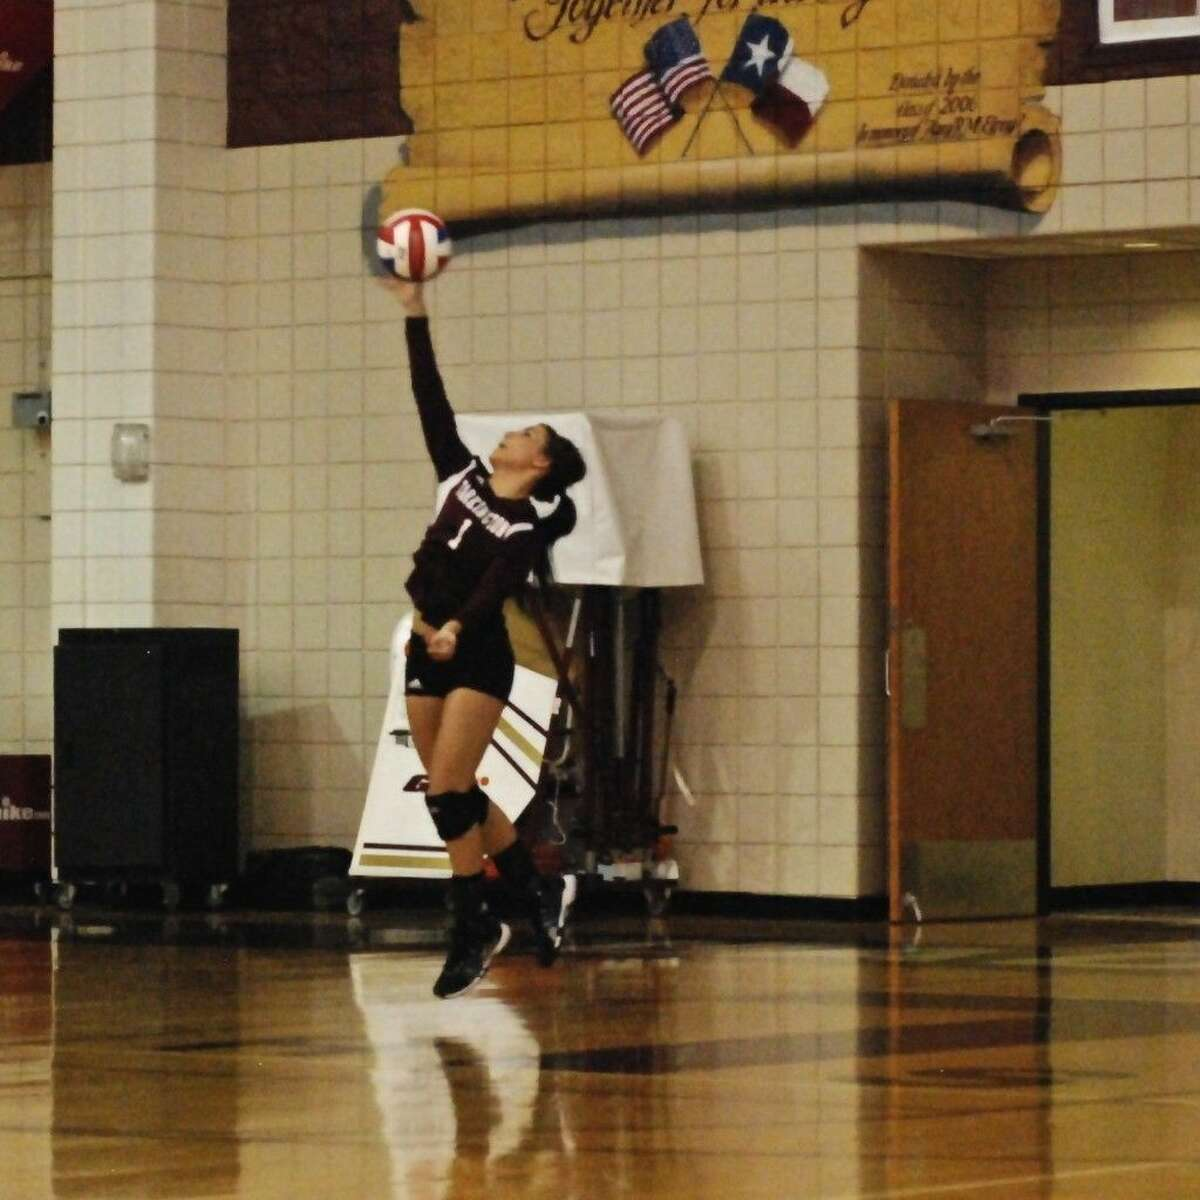 Paige Montgomery, back on the court for her senior year as defensive specialist for Tarkington's LadyHorns, serves in the first set against visiting Baytown Sterling, Aug. 22.